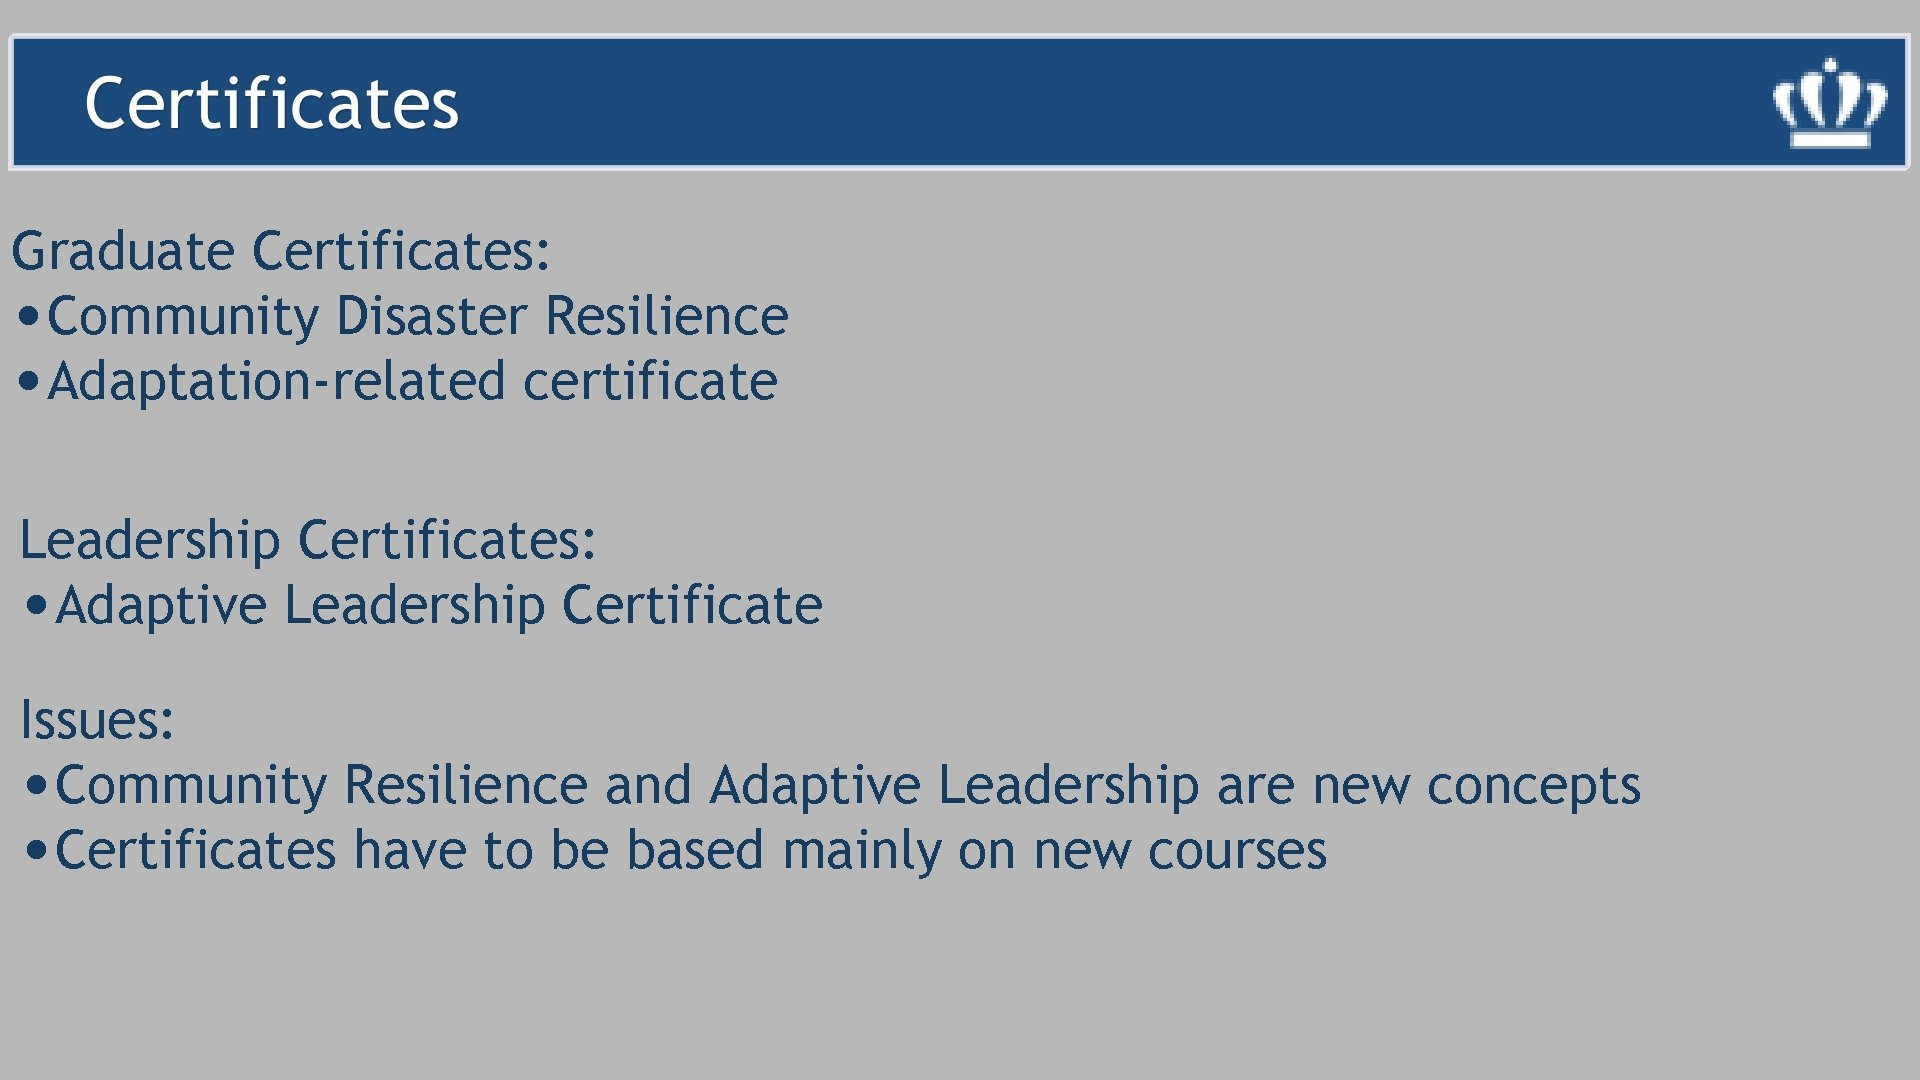 Graduate Certificates: • Community Disaster Resilience • Adaptation-related certificate Leadership Certificates: • Adaptive Leadership